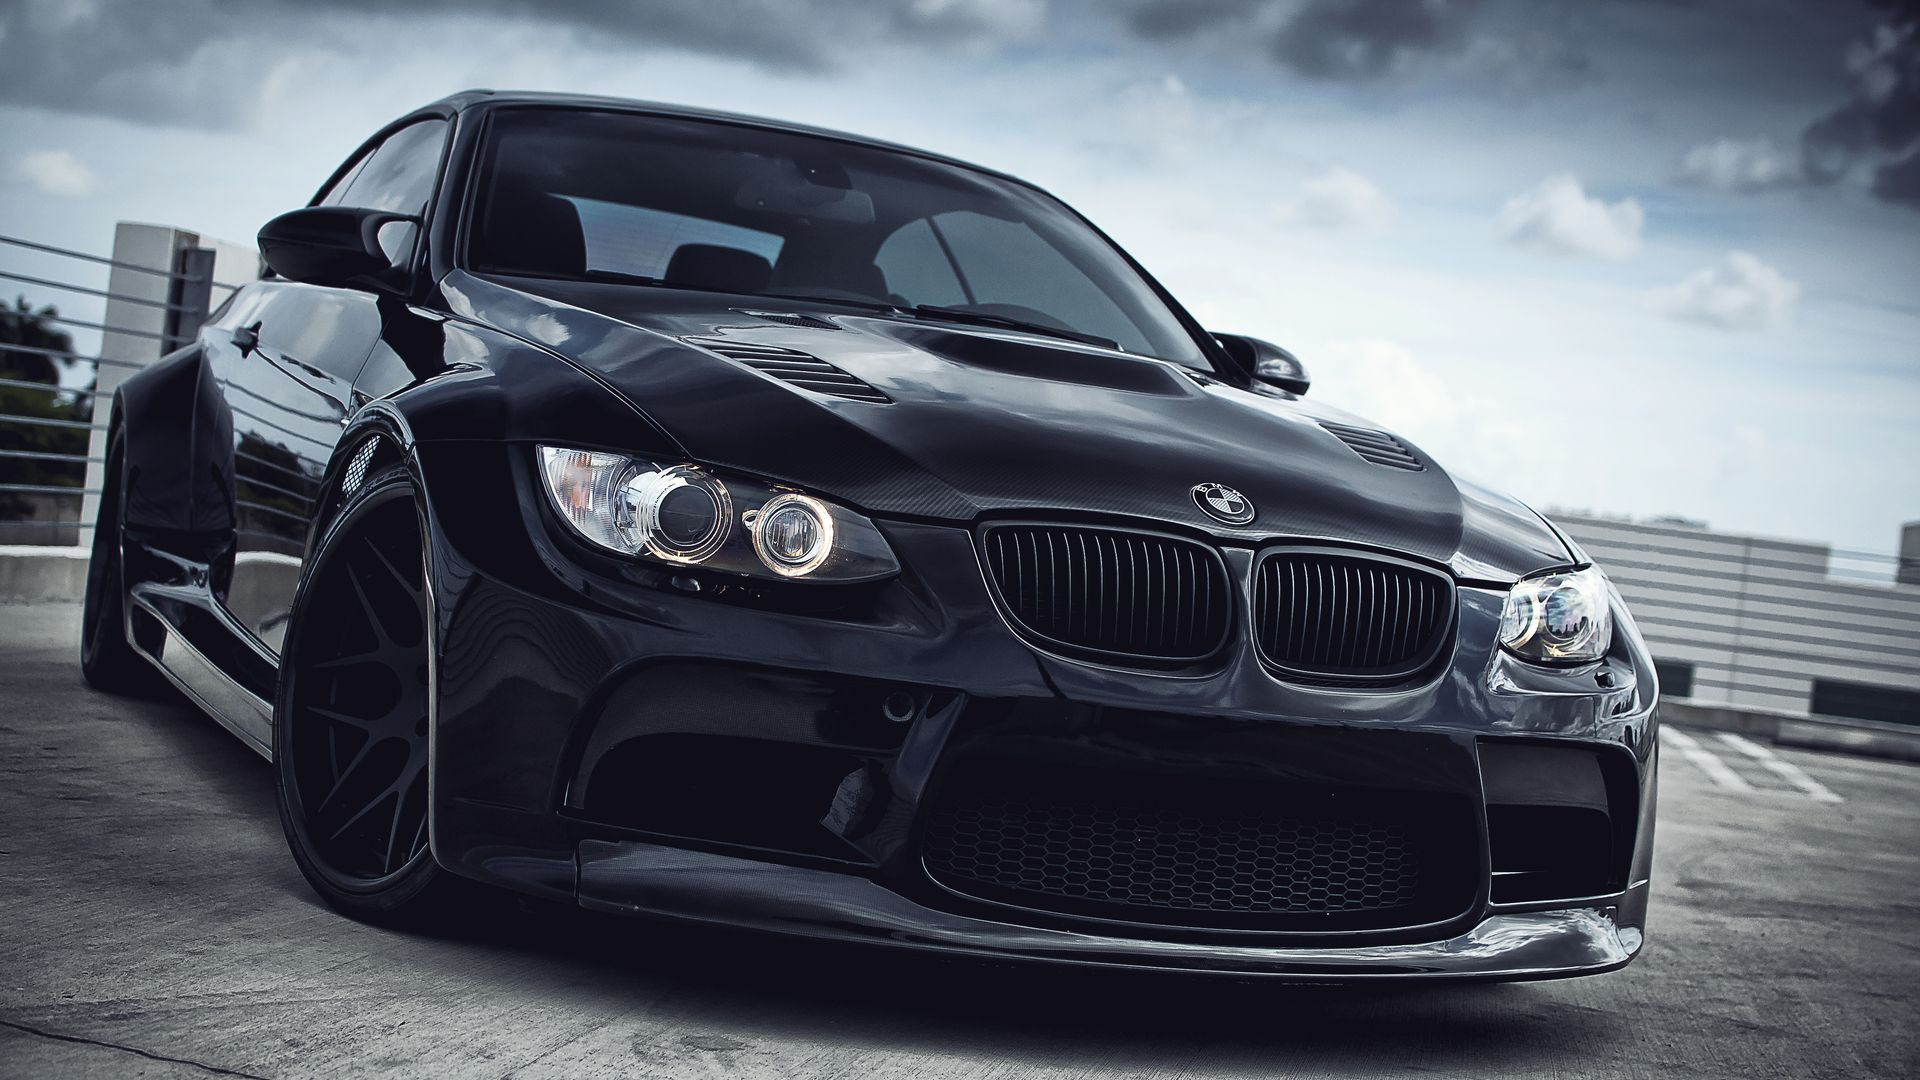 luxury bmw cars wallpaper bmw wallpaper hd download | cars and